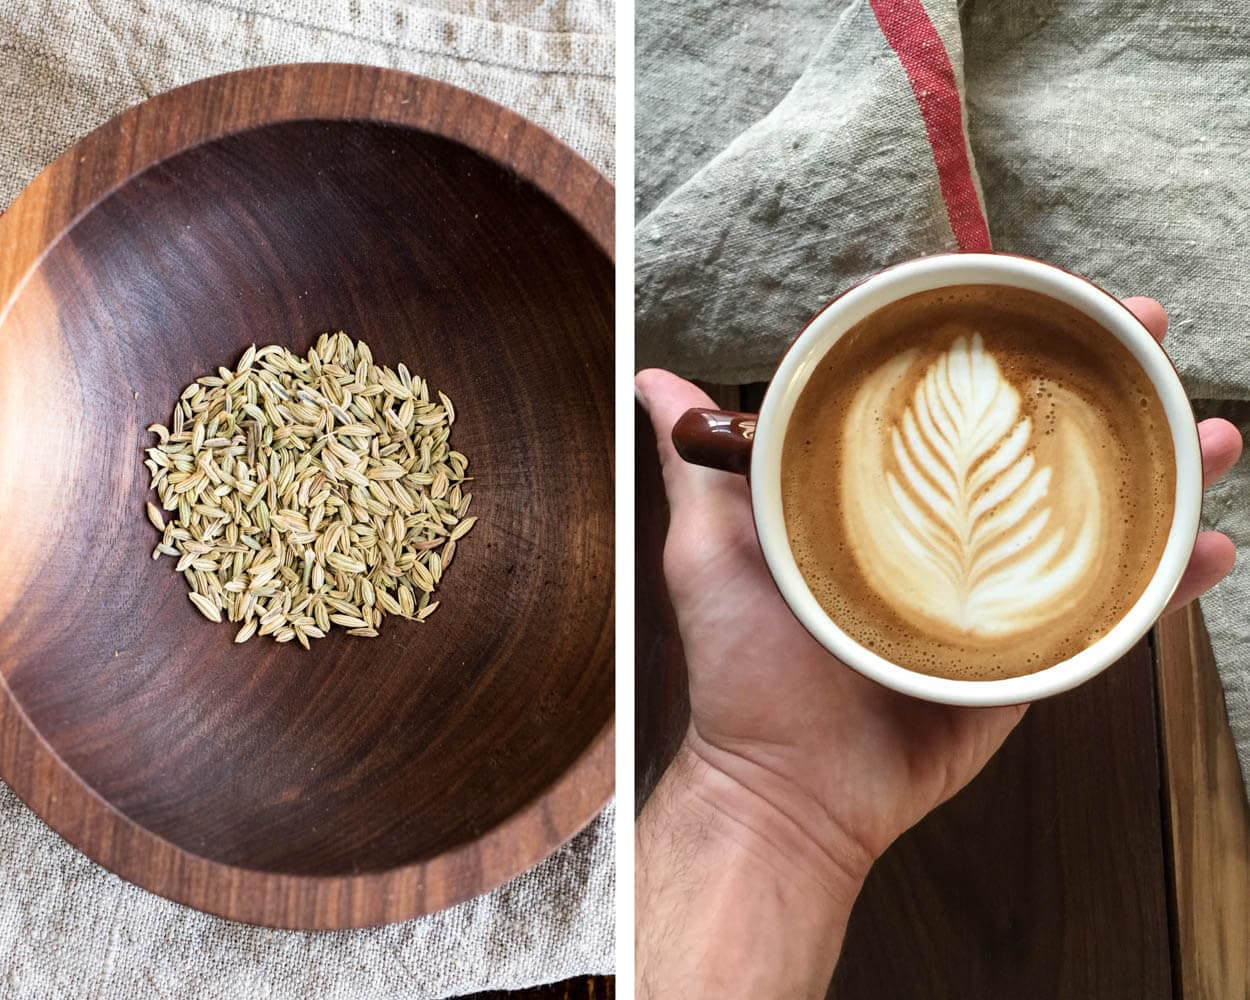 fennel seed and a cappuccino